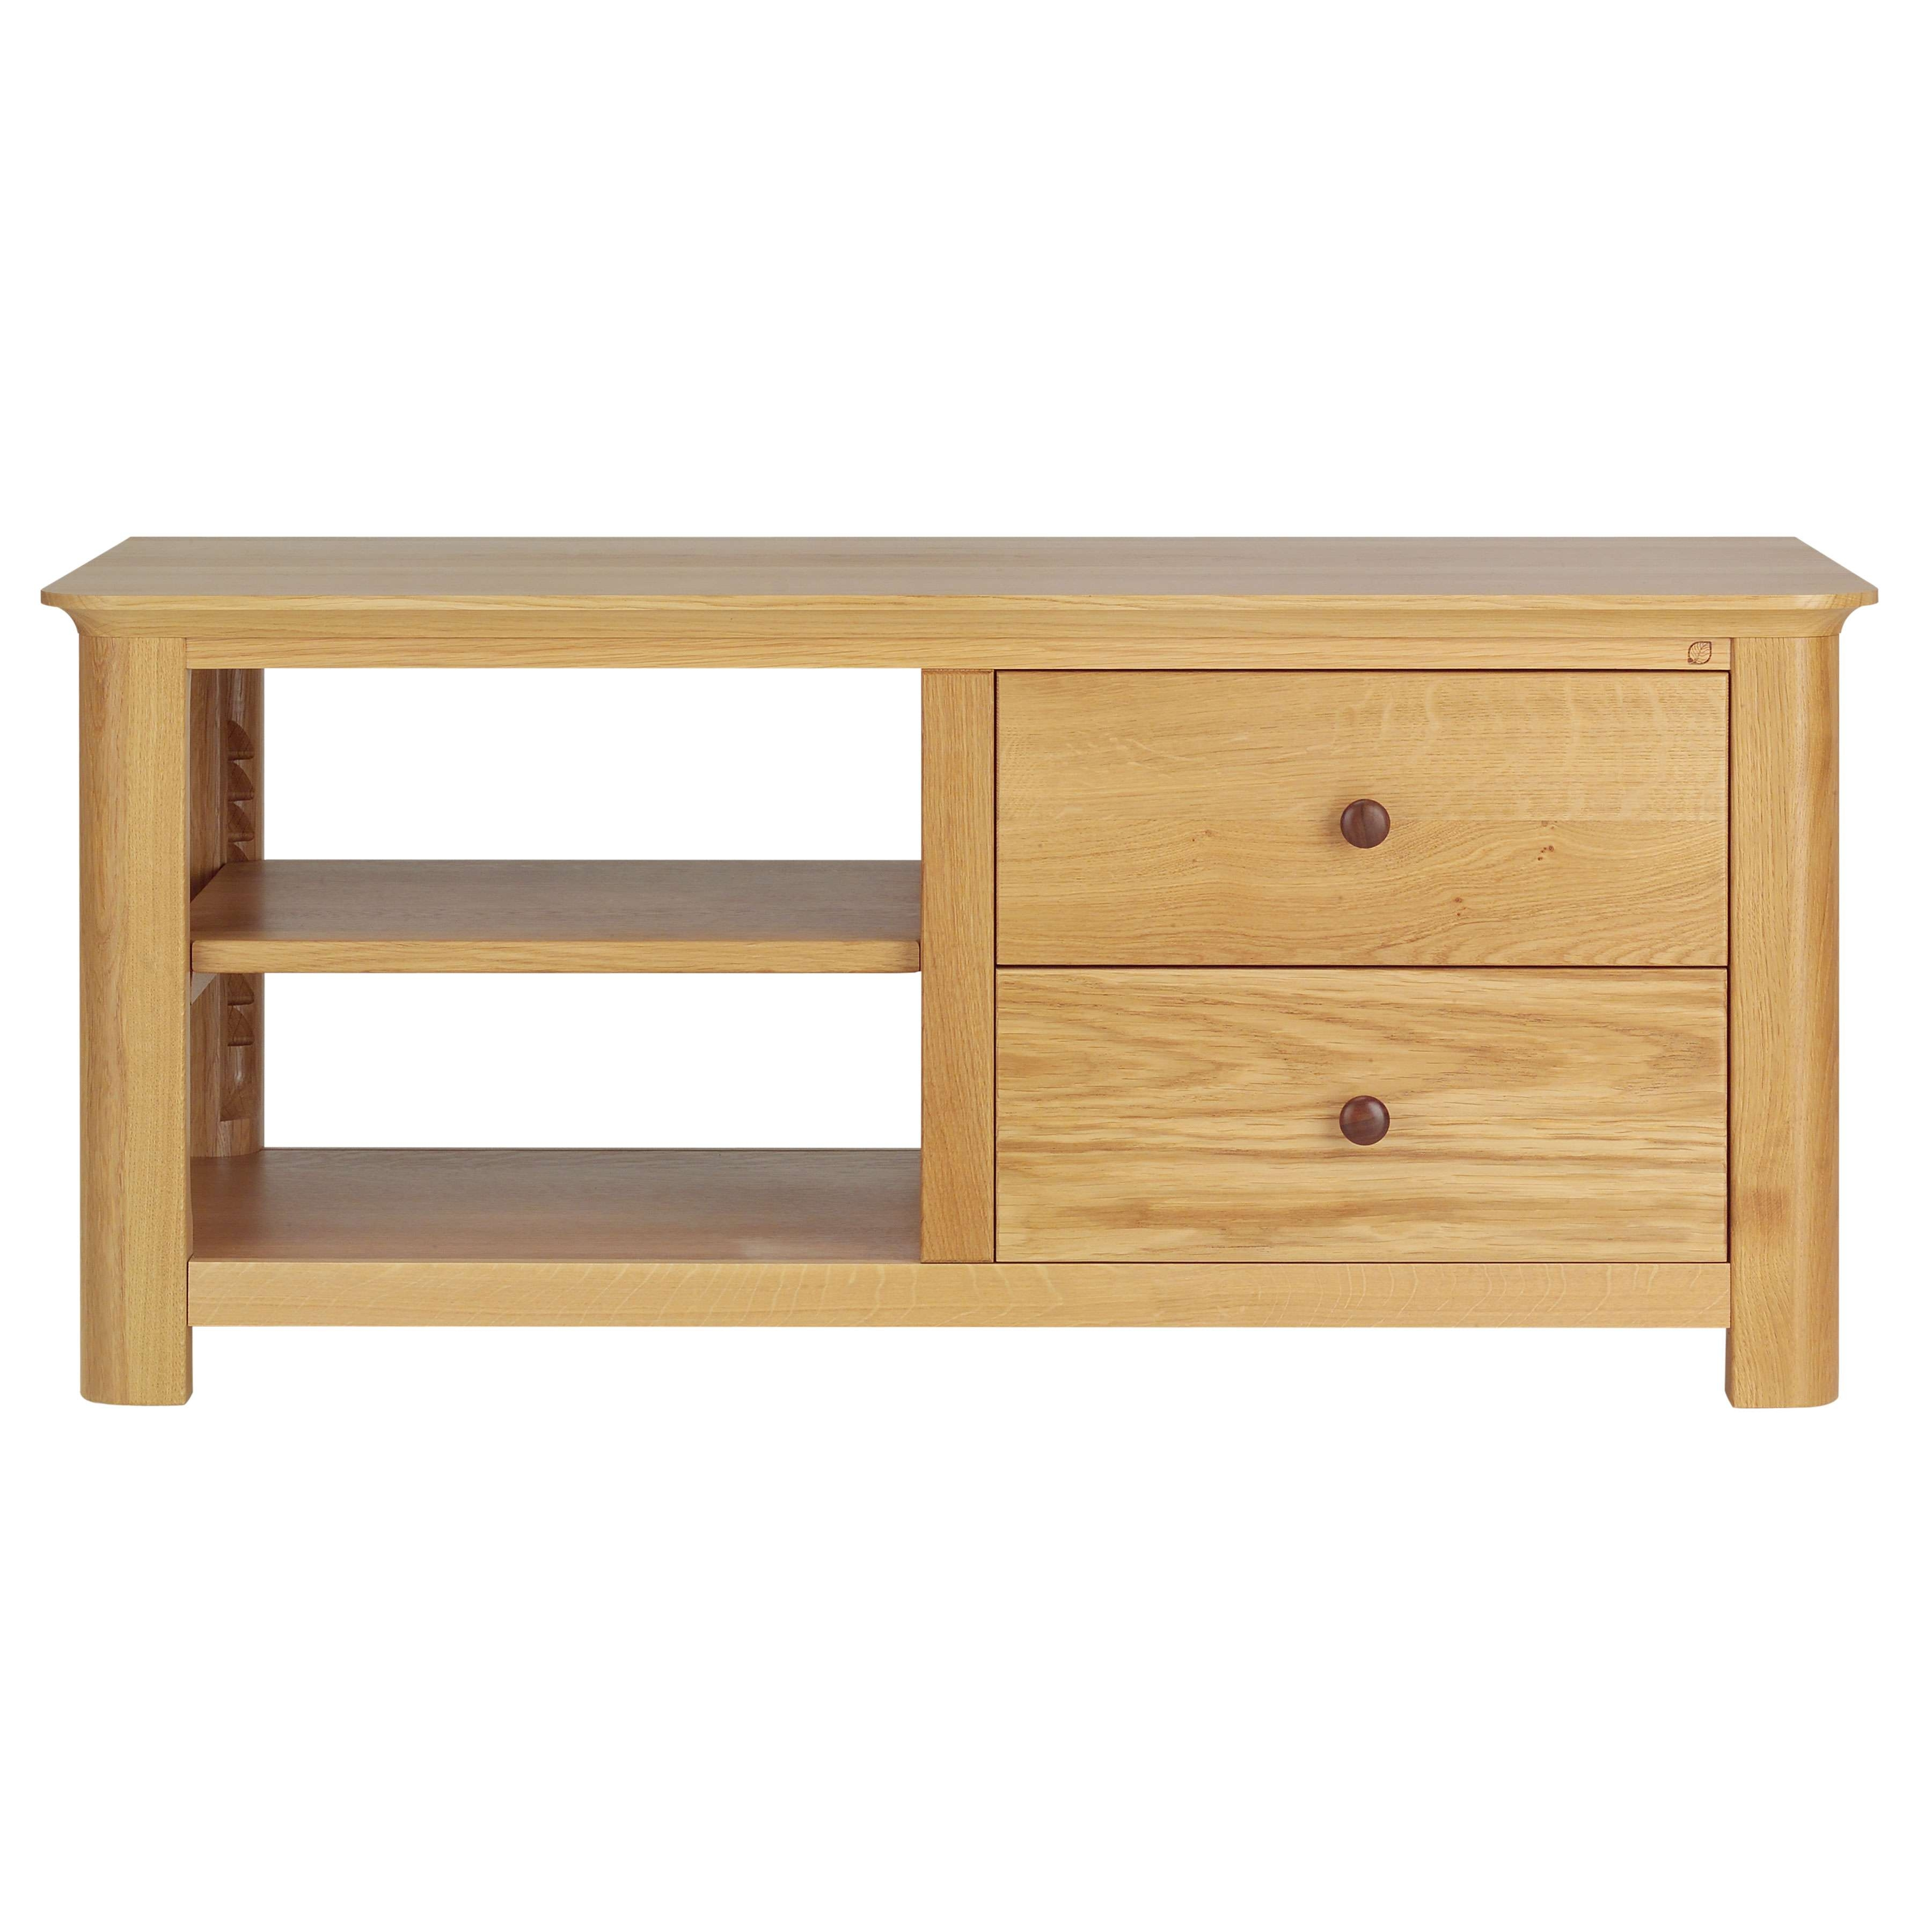 Small Tv Cabinet | Eo Furniture Pertaining To Small Tv Cabinets (View 14 of 20)